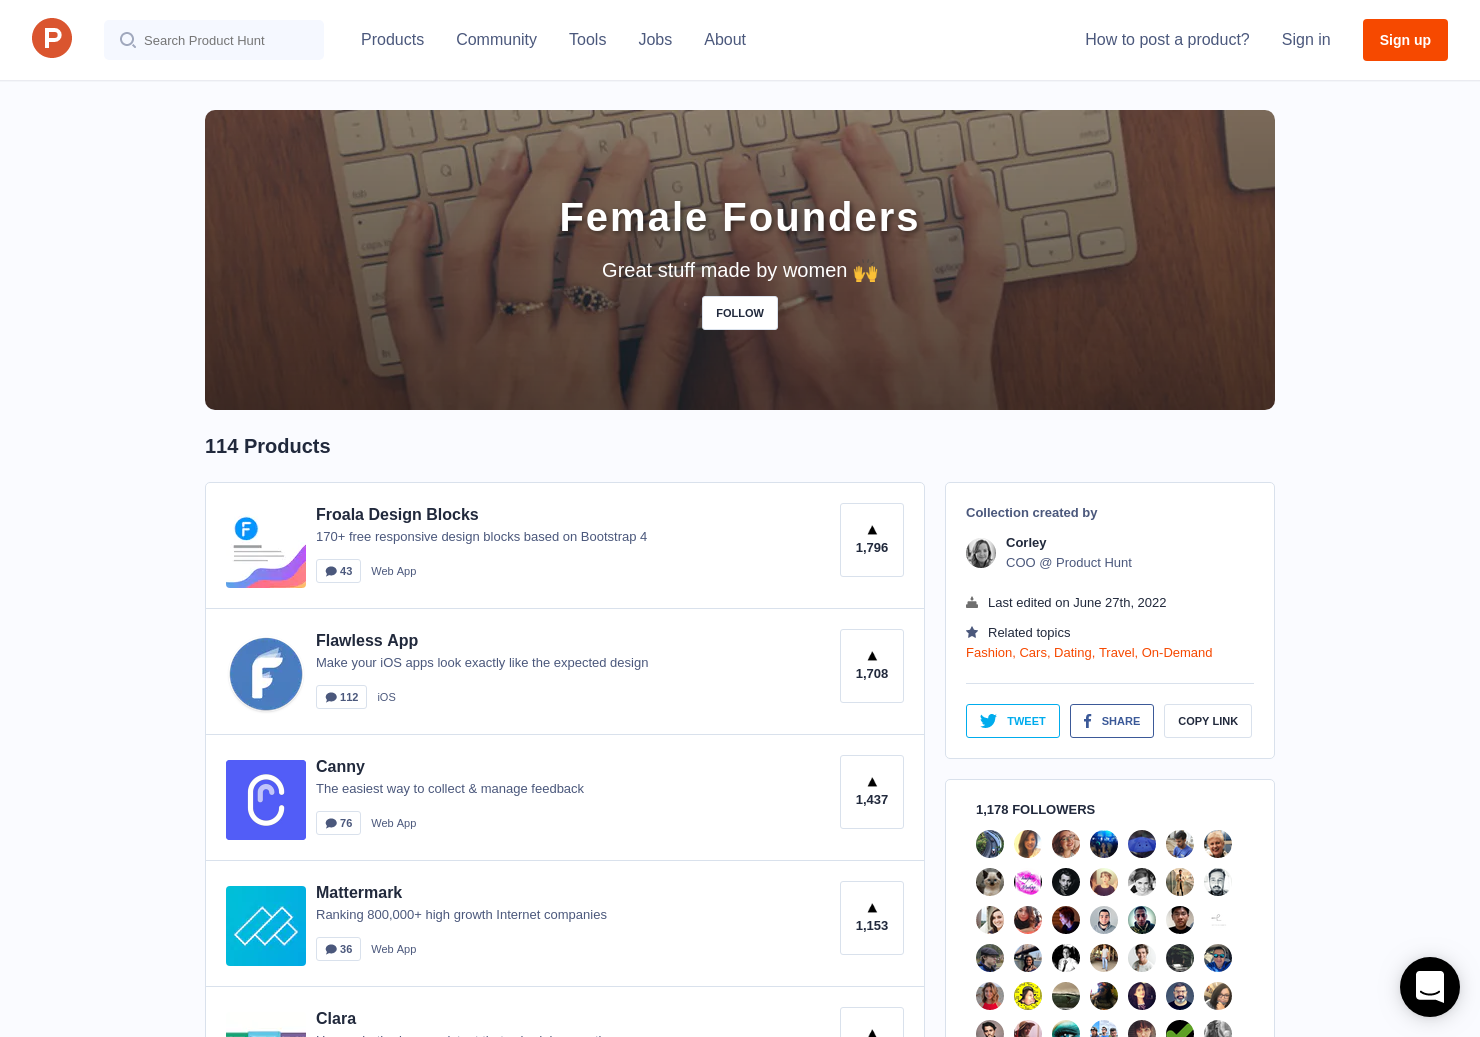 Female Founders by Corley